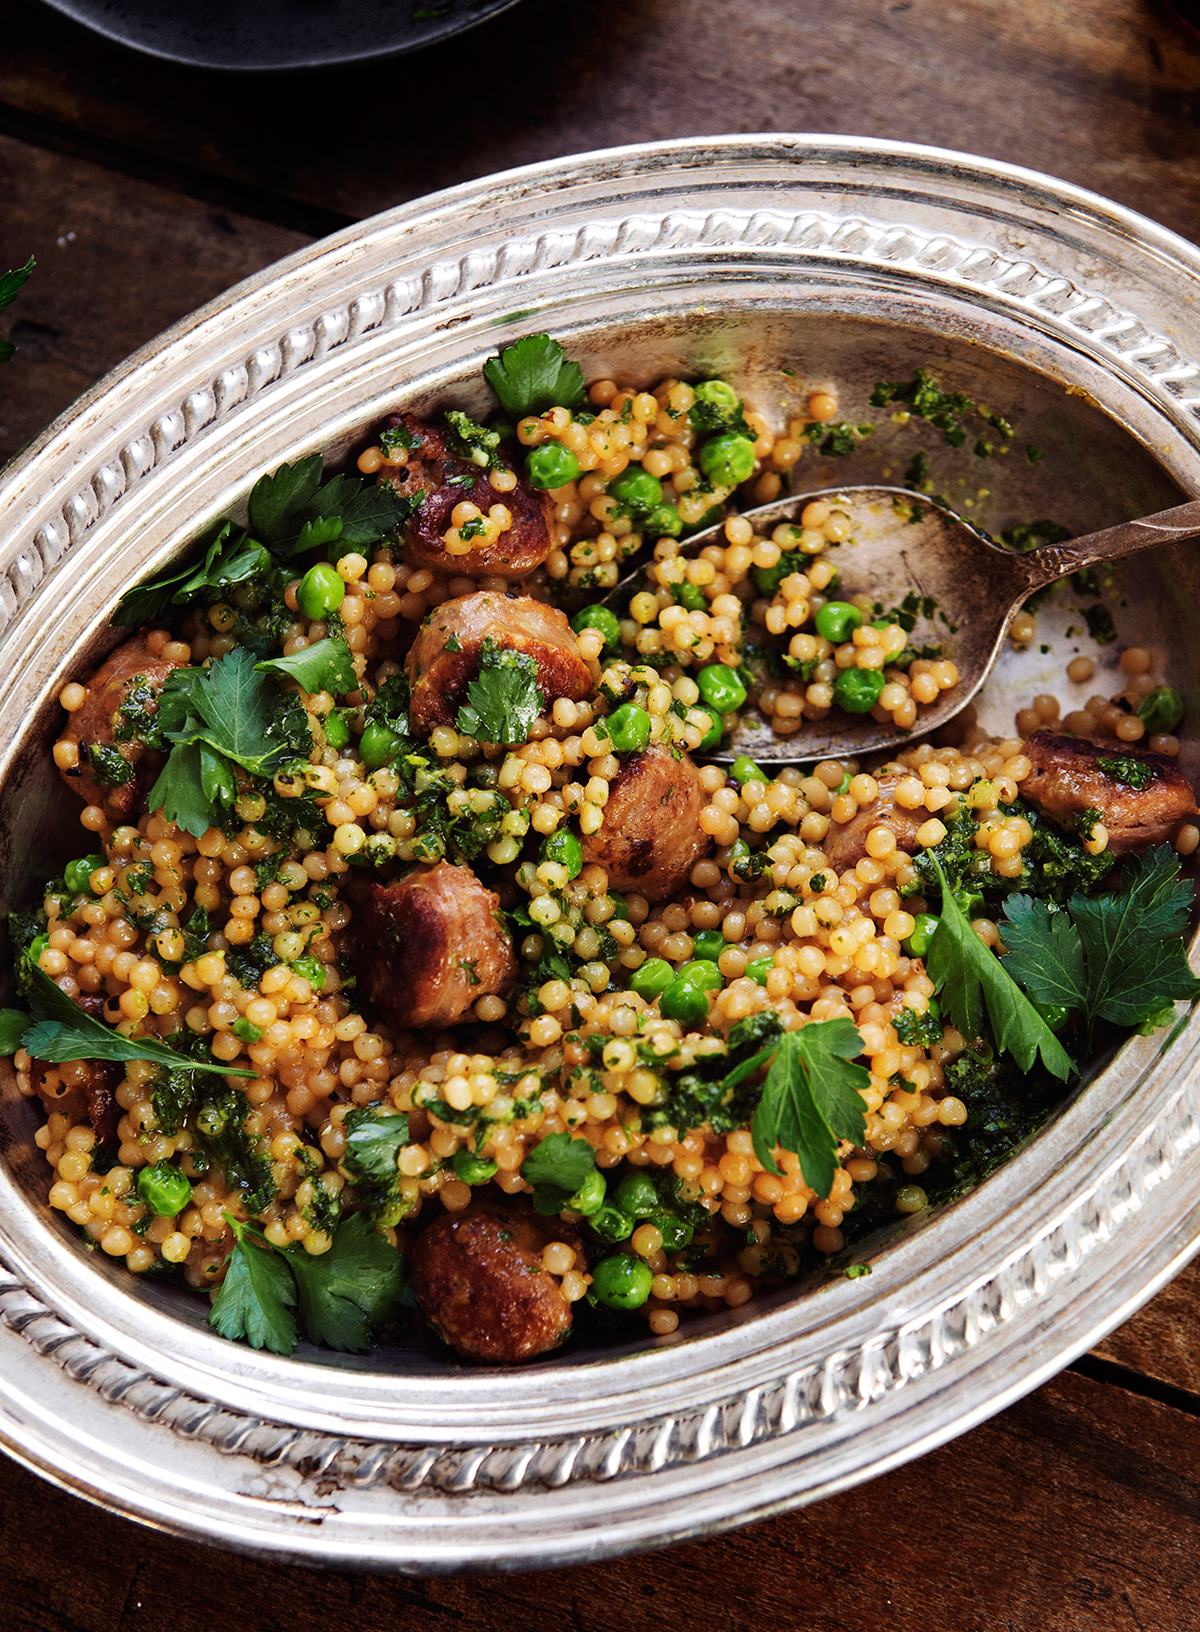 ABHSS_Israeli-Couscous-Risotto-with-Sausage_Peas_Parsley-Pesto_0161_cropped.jpg